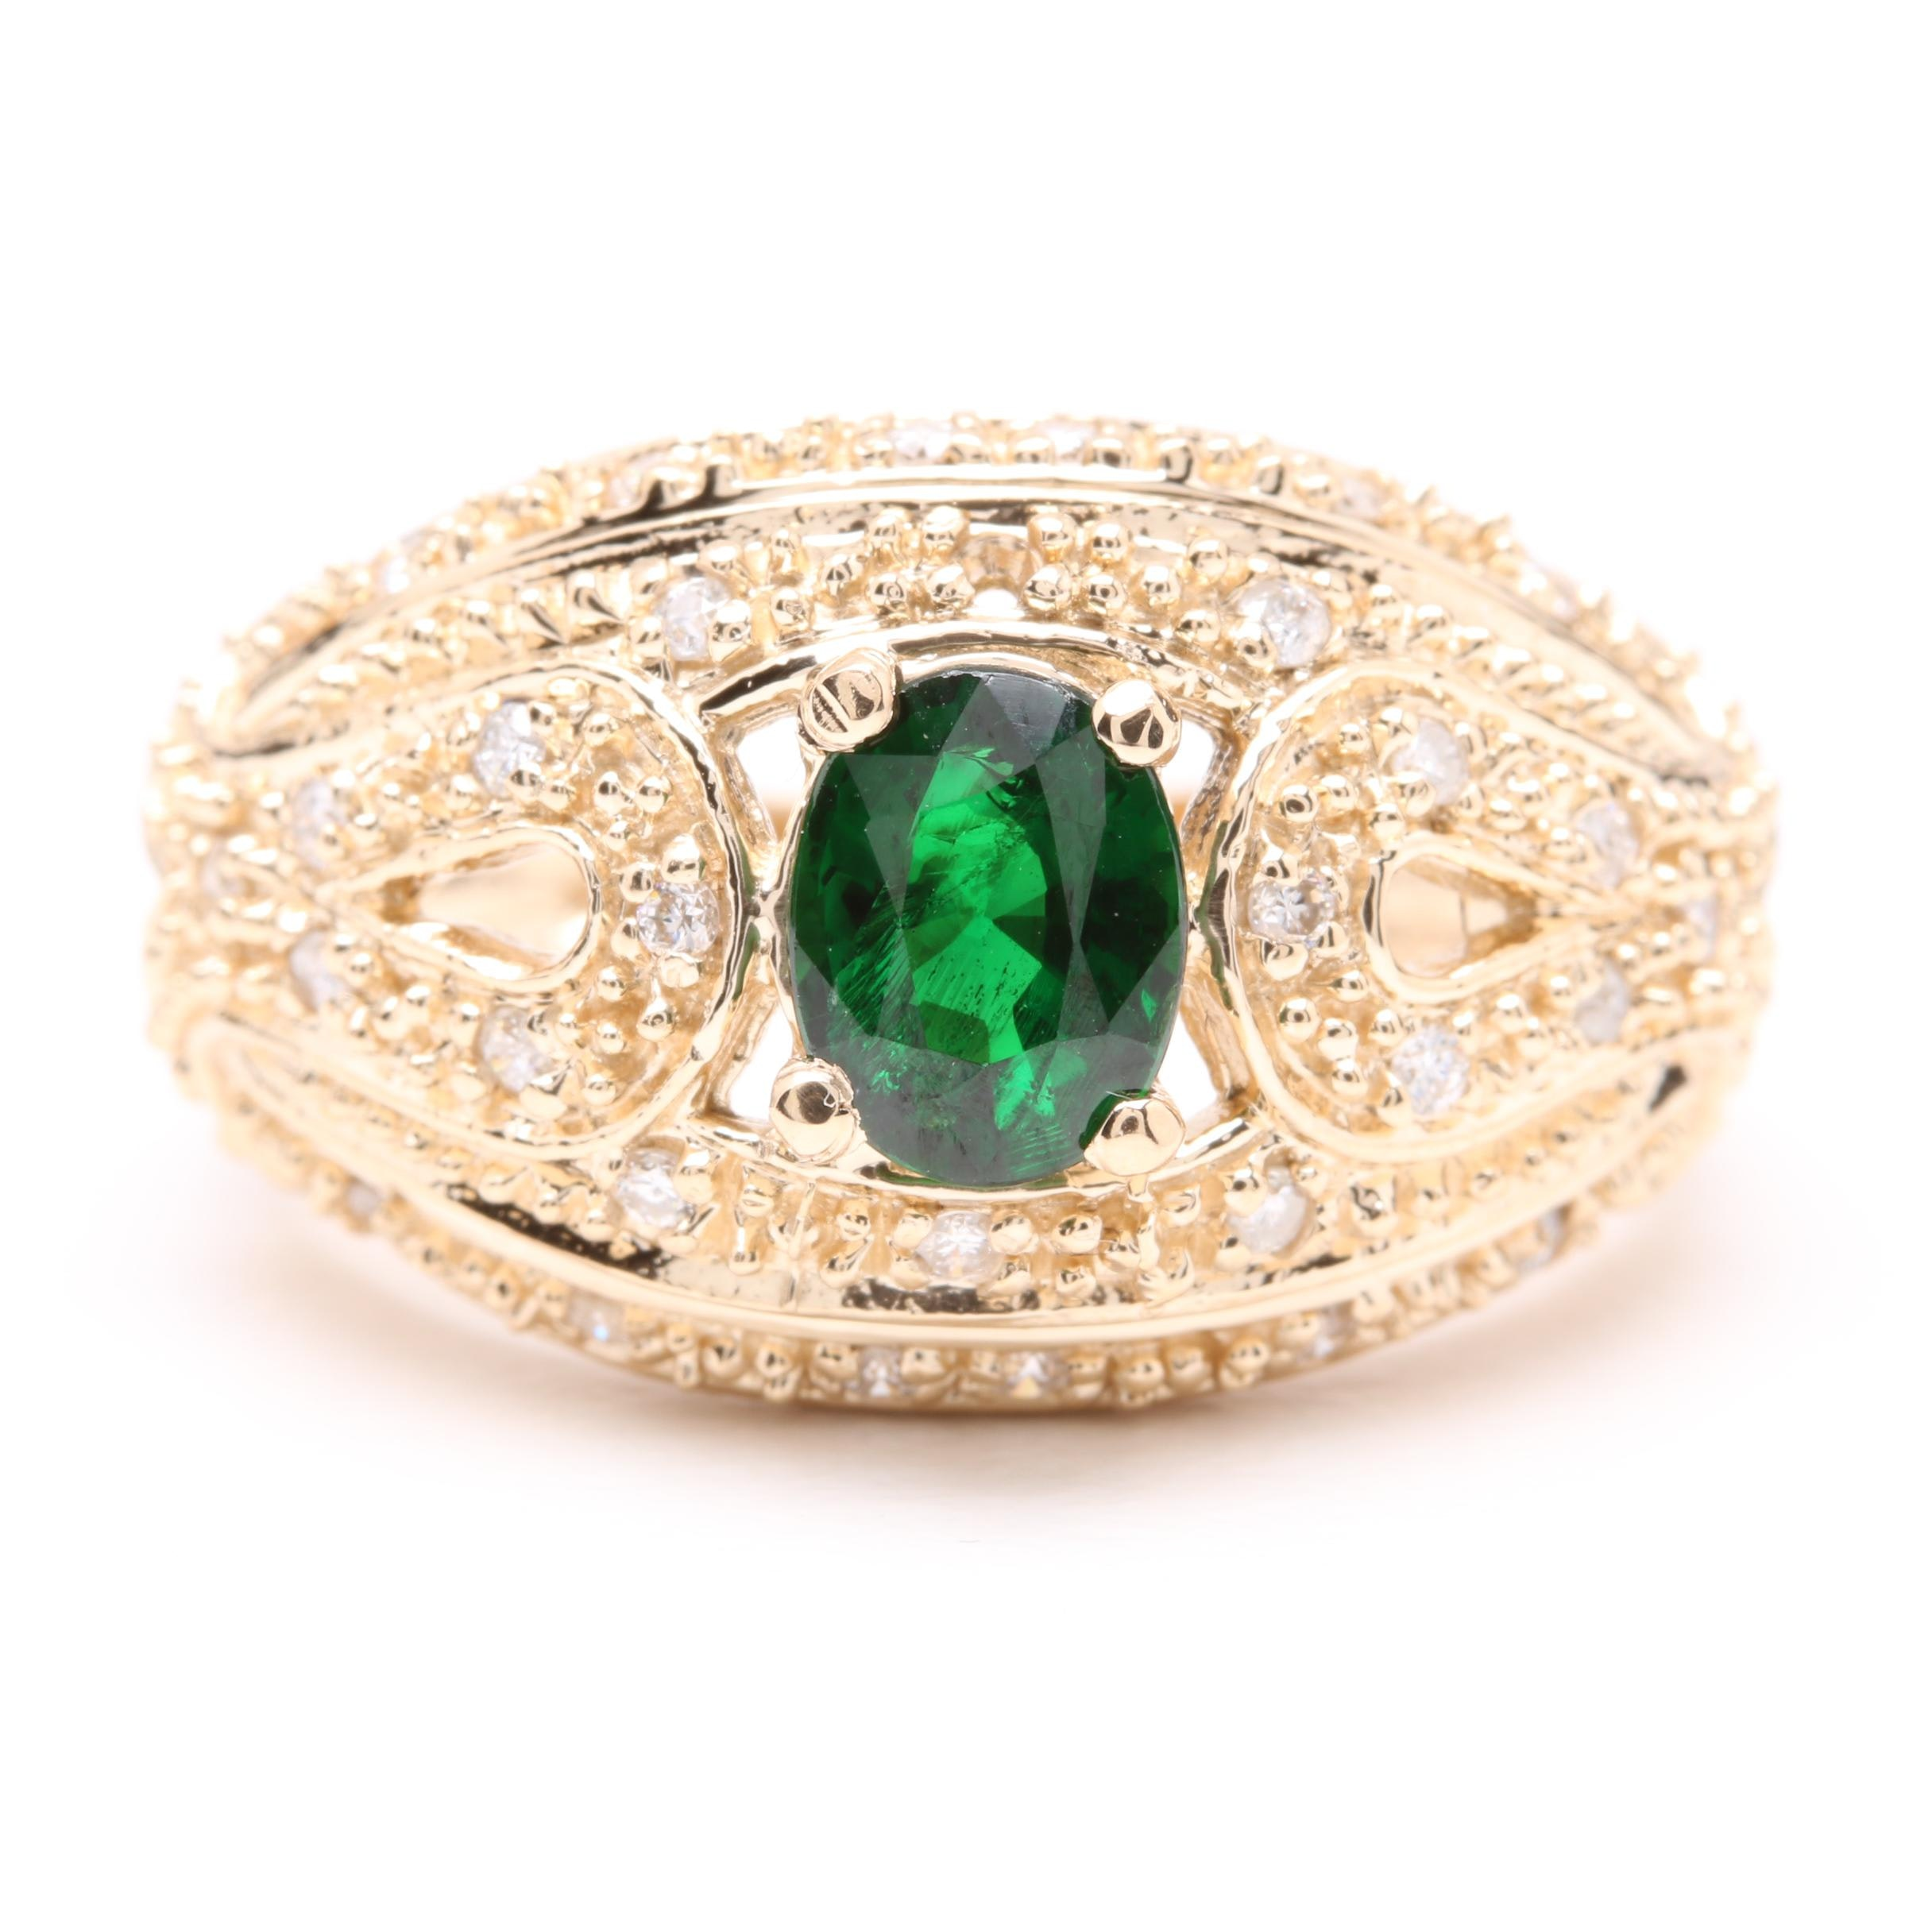 14K Yellow Gold Tsavorite Garnet and Diamond Ring